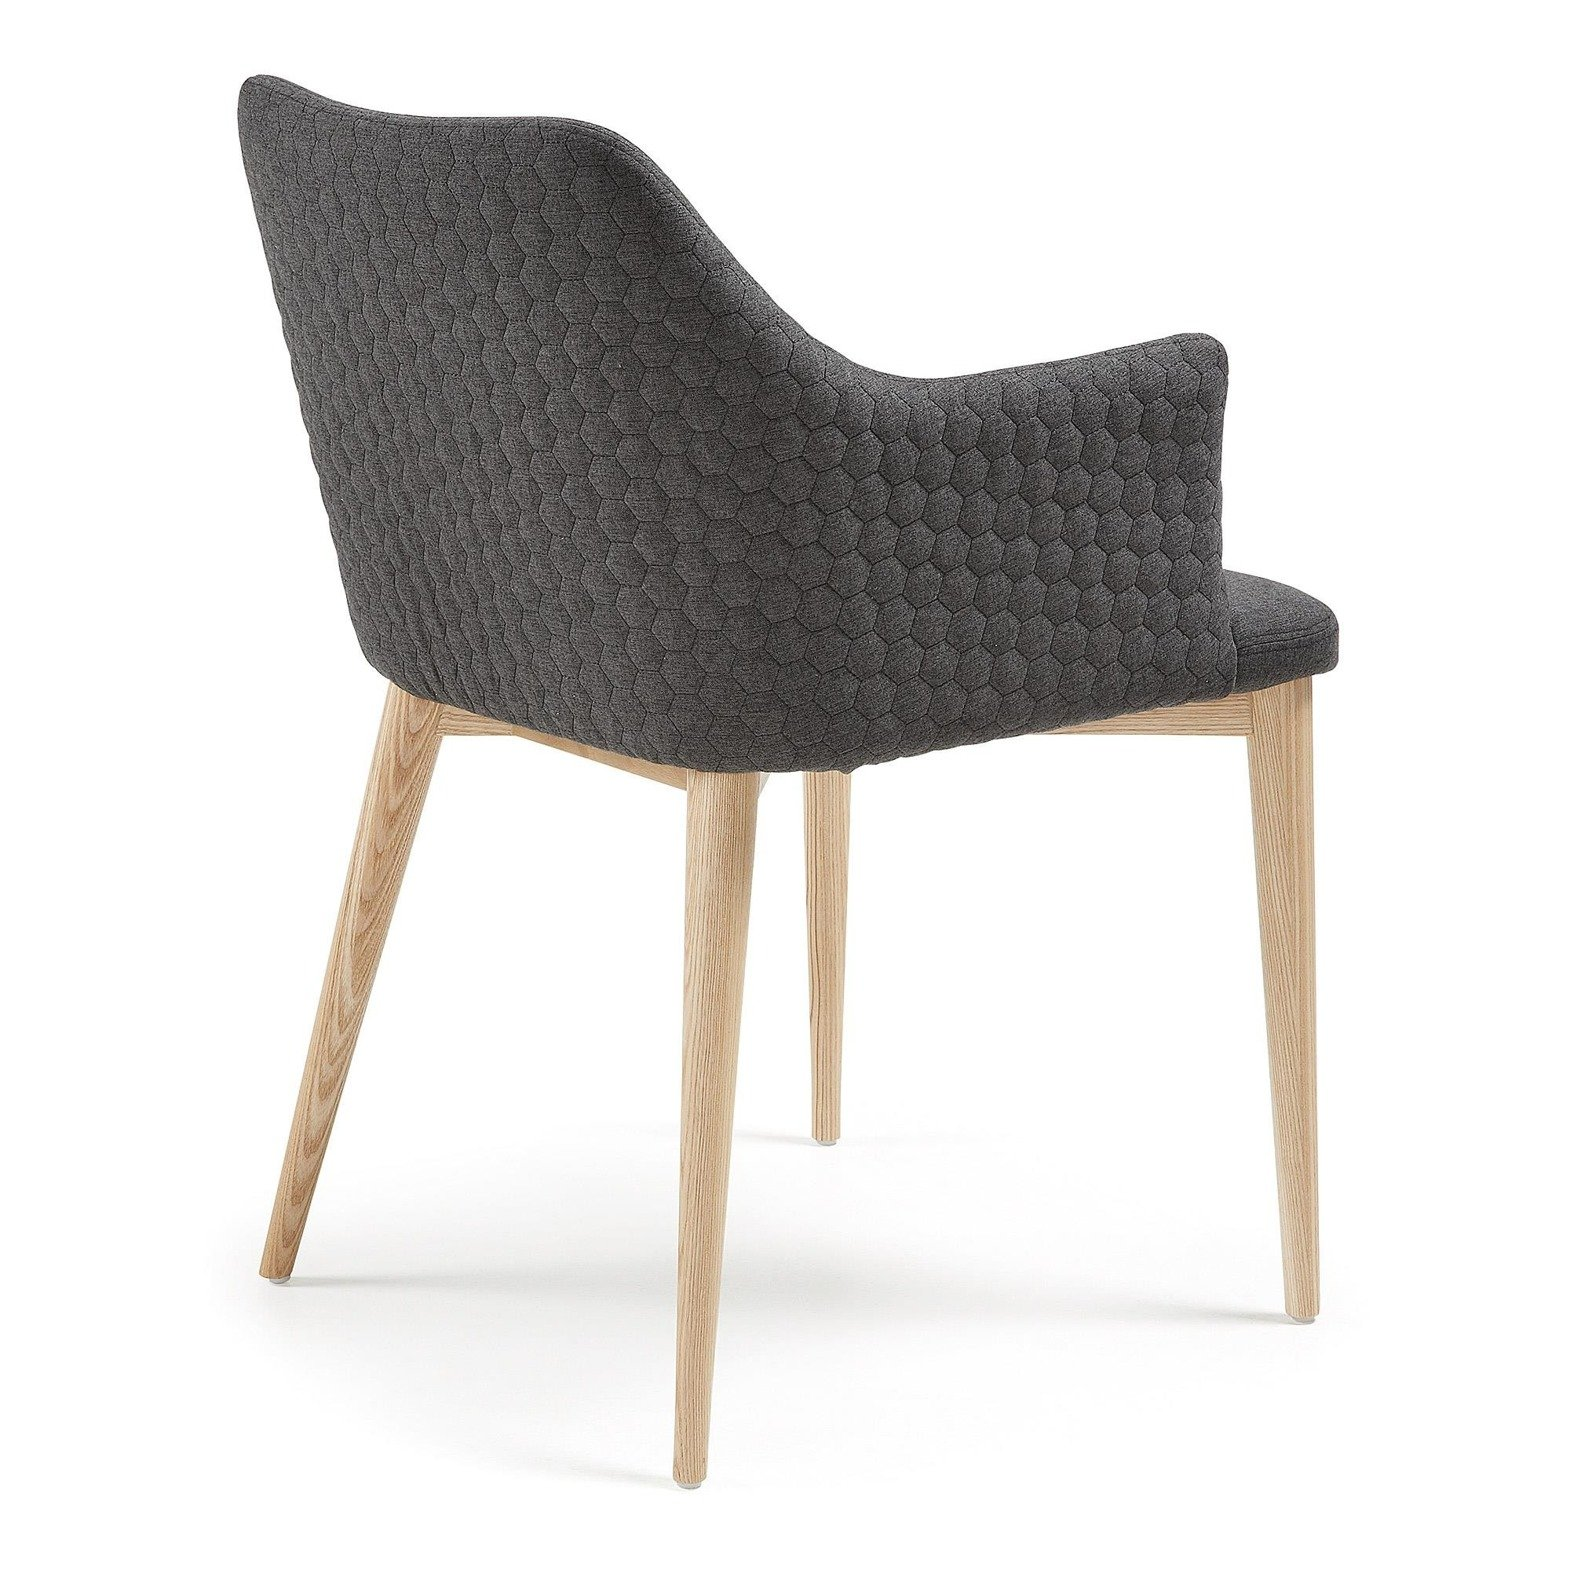 Erida Armchair nat wood quilted fabric dark gray